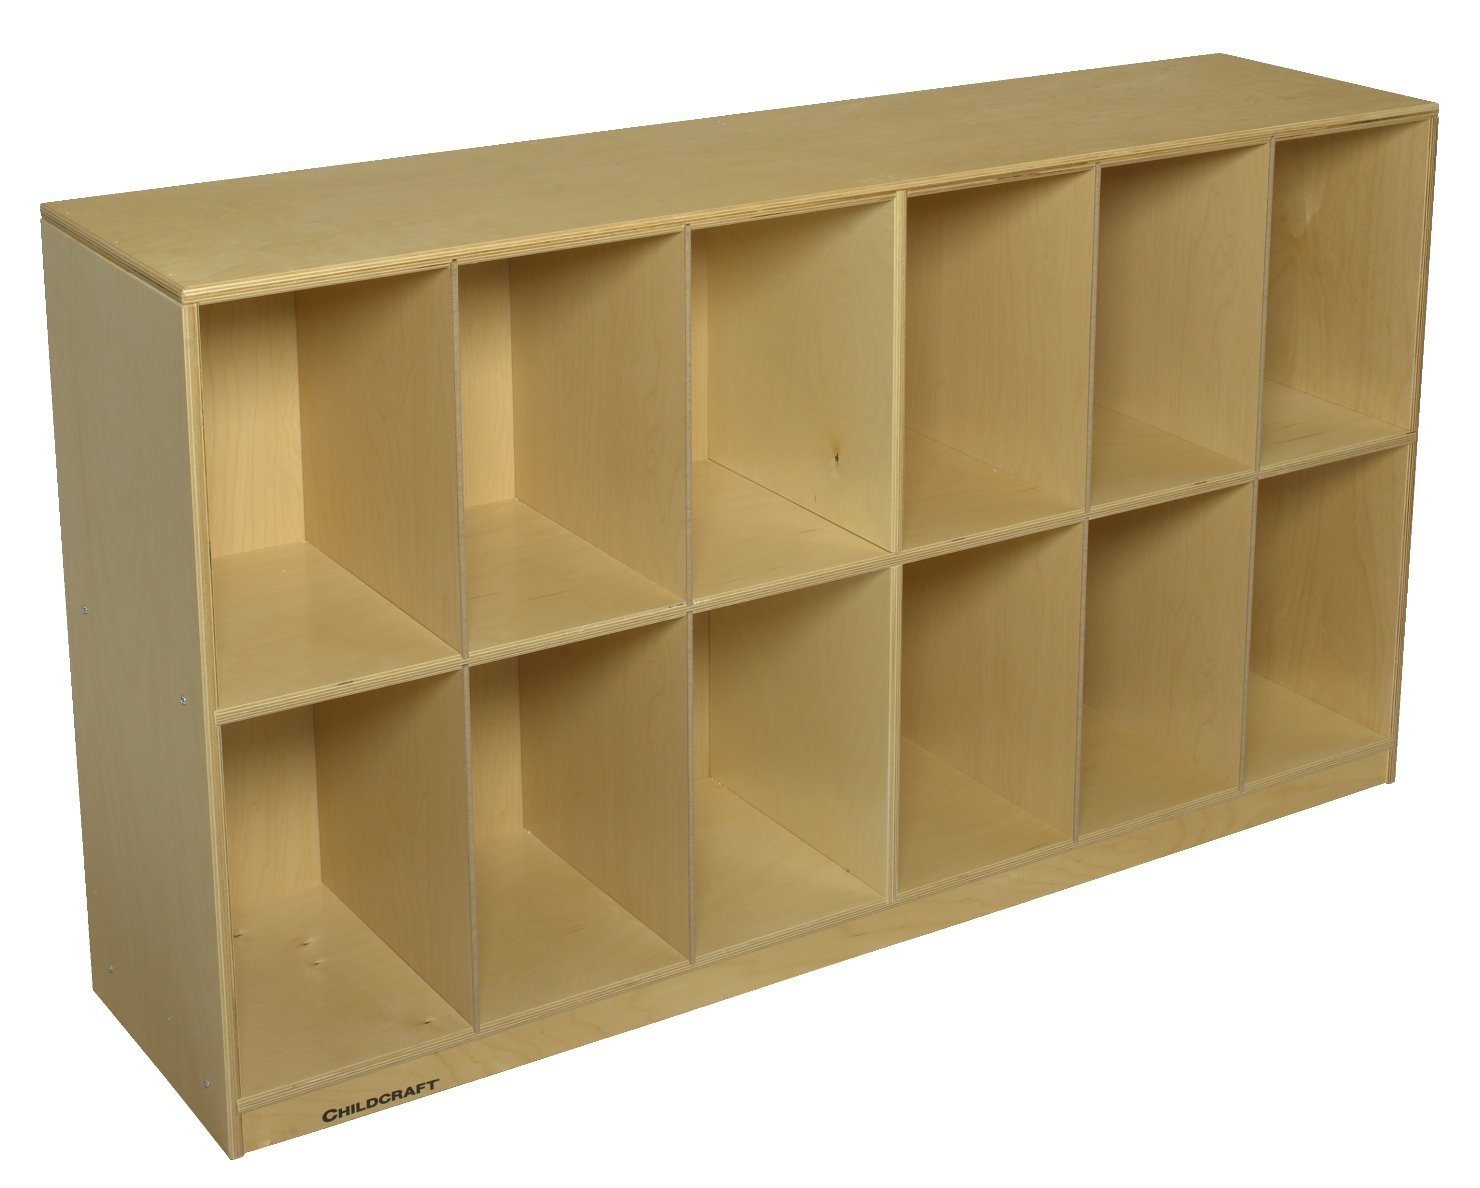 Childcraft 2793 Low Storage Unit, 12 Cubbies, 32.63'' Height, 14.25'' Width, 58.38'' Length, Natural Wood